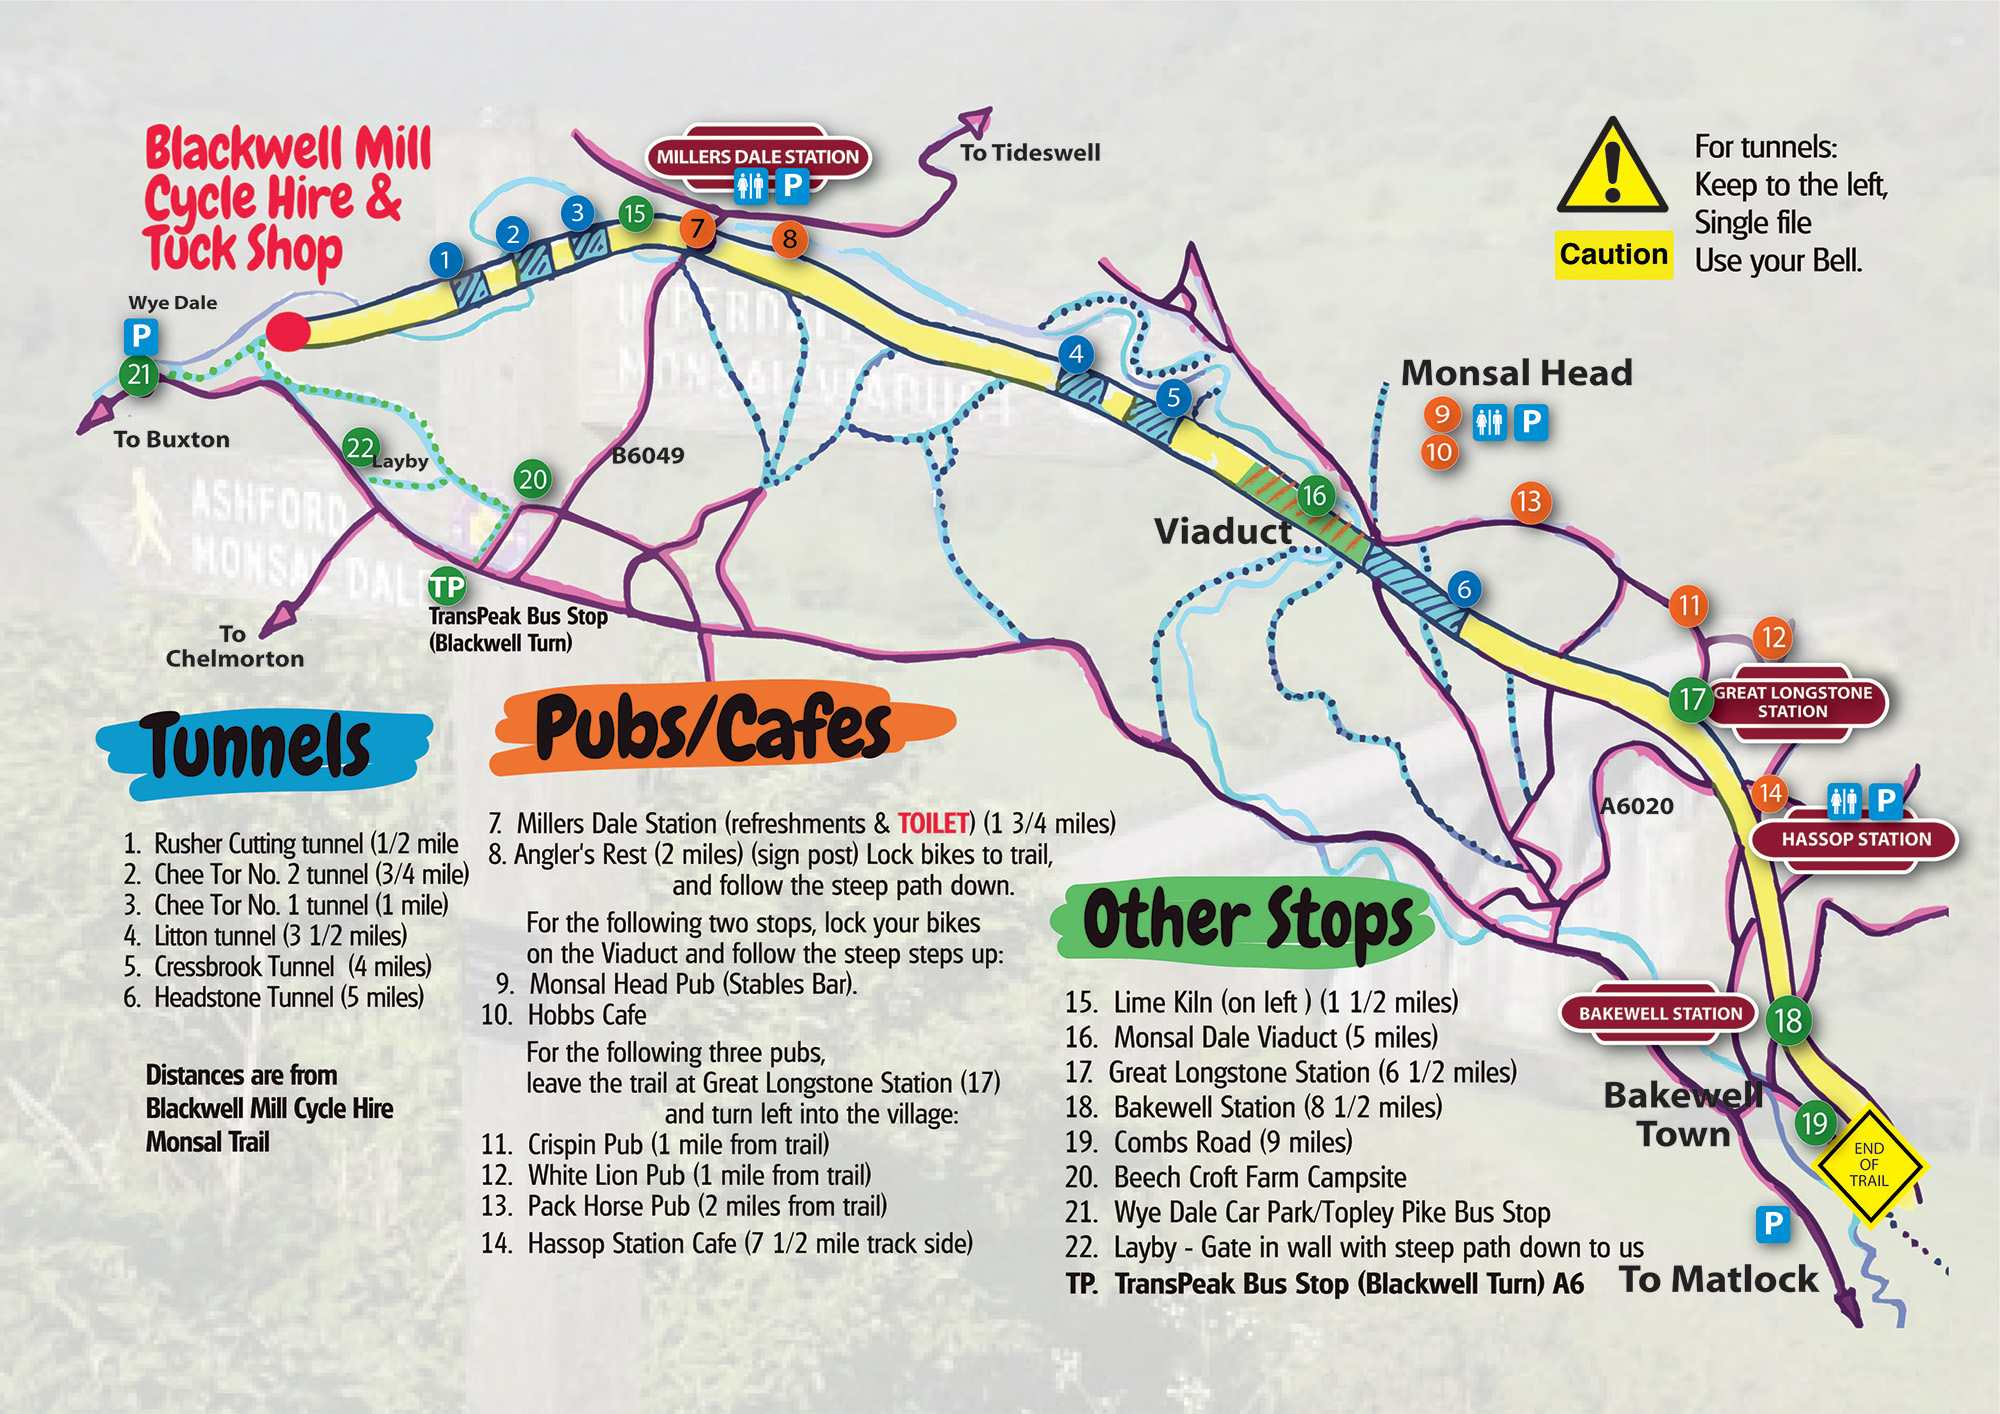 Monsal Trail Map - Cycle Hire, Blackwell Mill